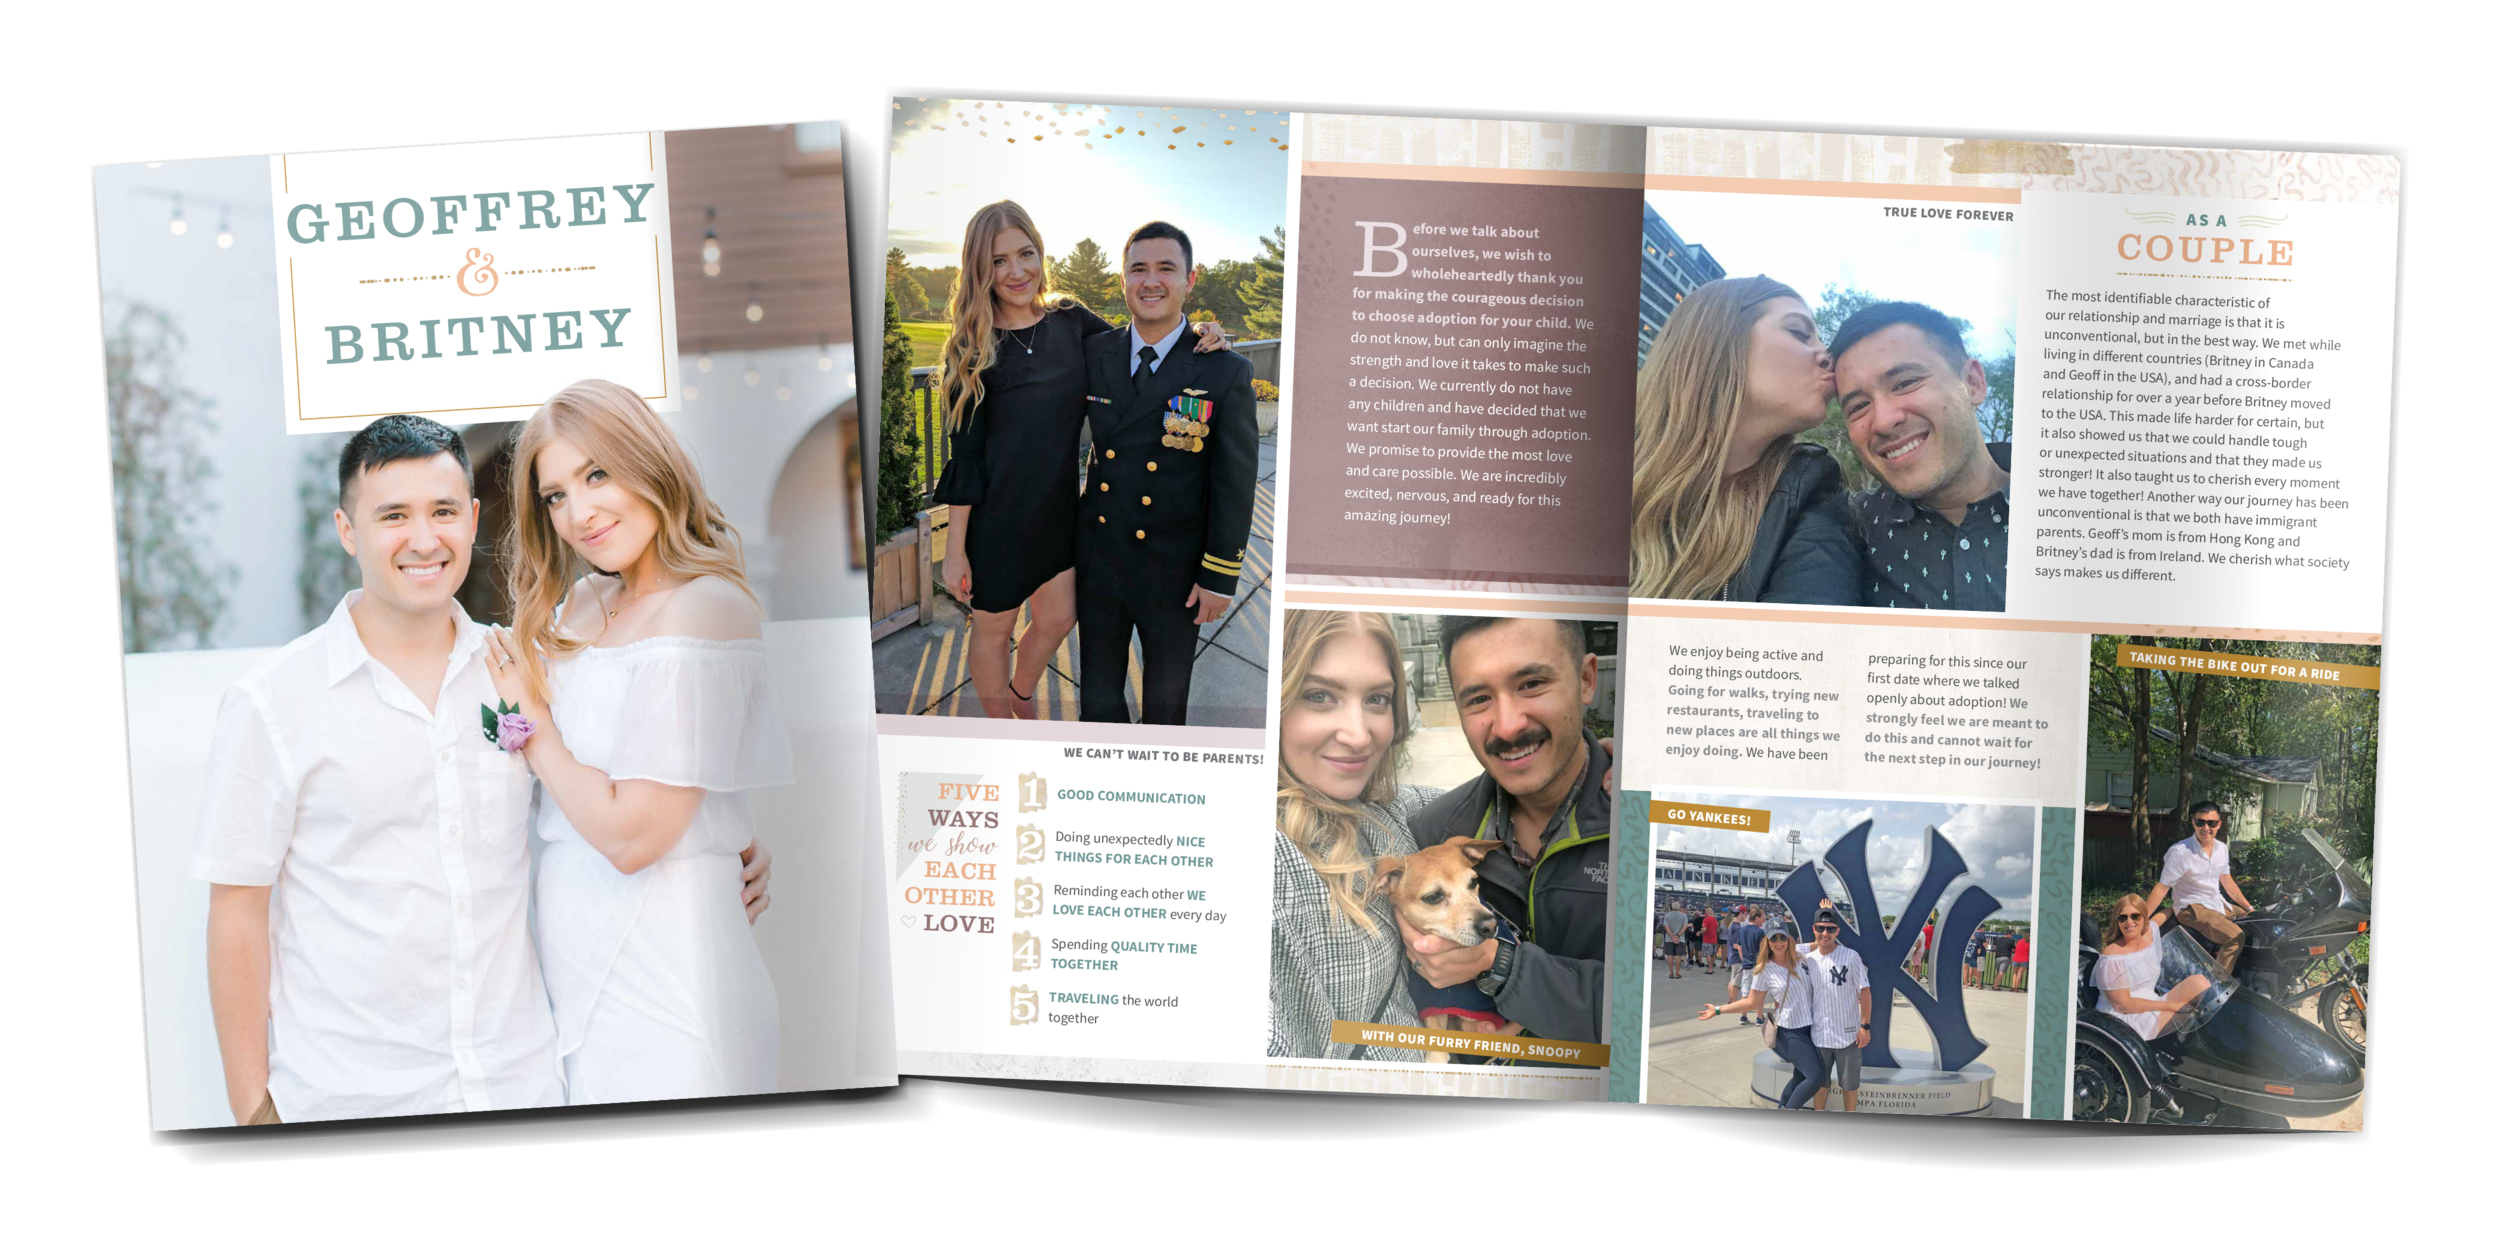 Britney and Geoffrey's adoption profile book